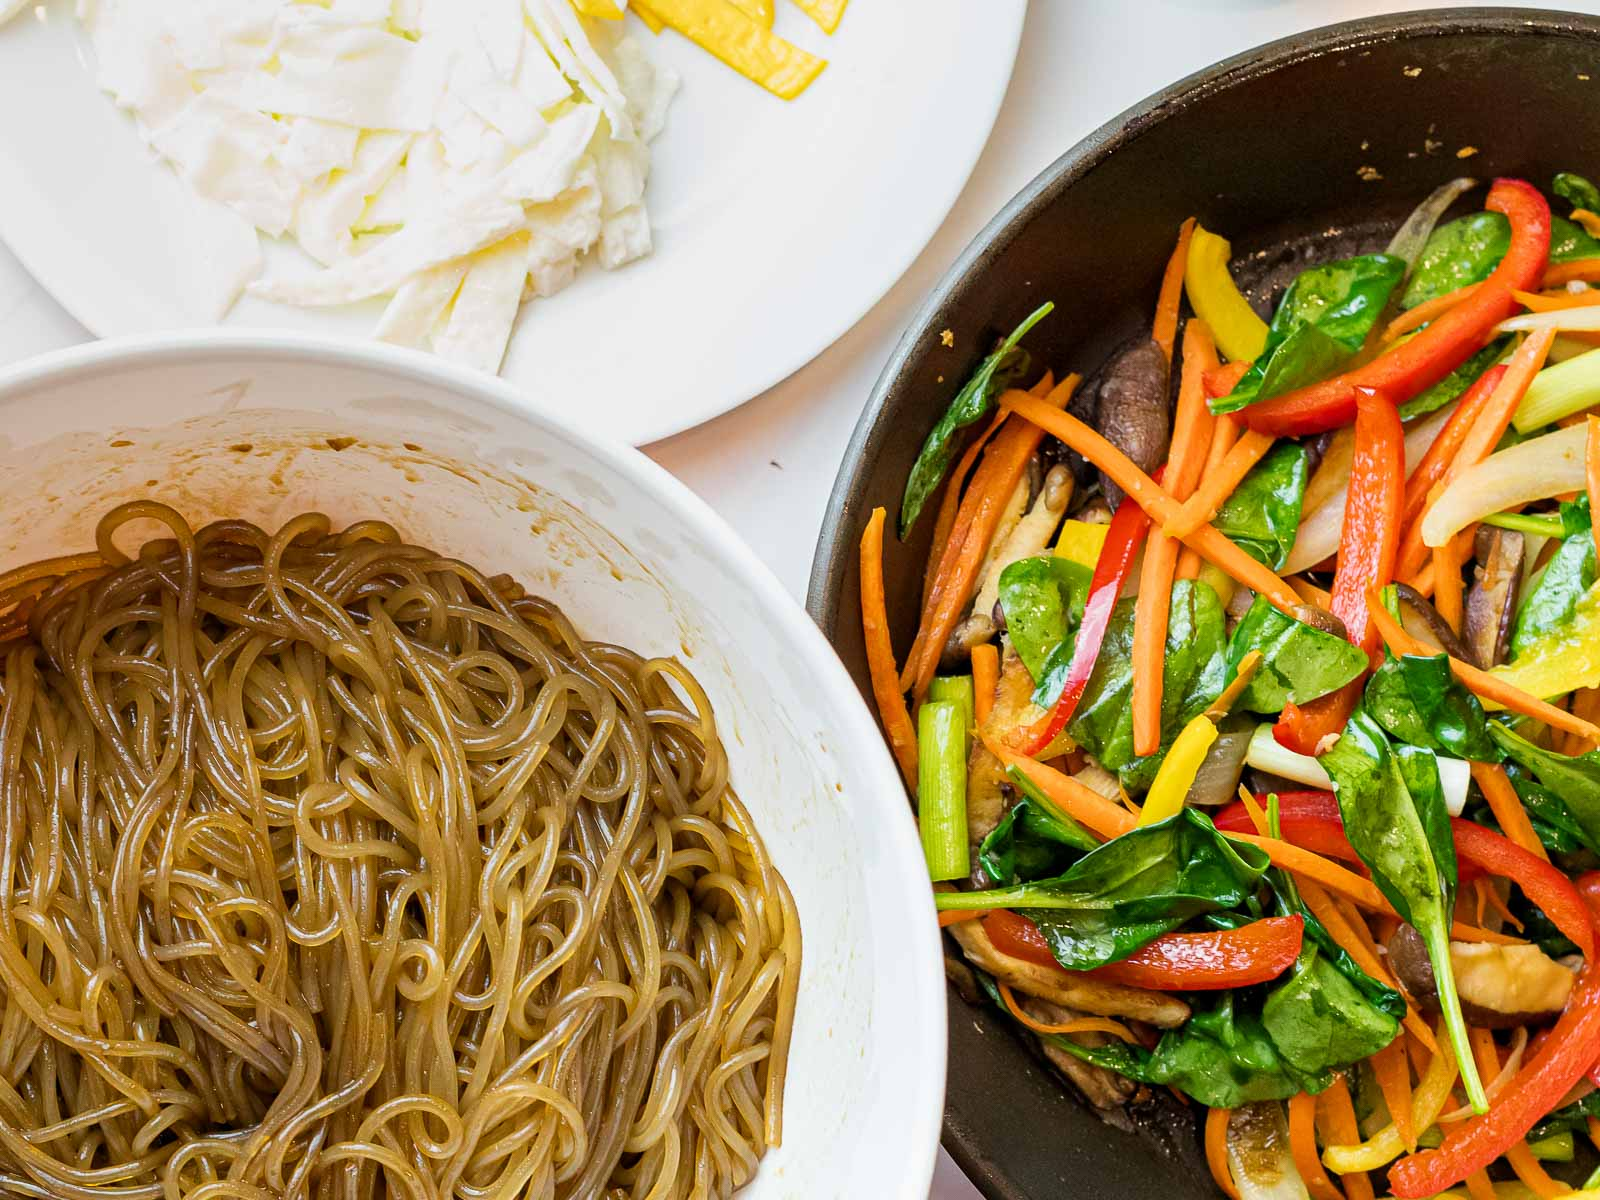 Korean glass noodles with sauce next to japchae vegetables and egg whites